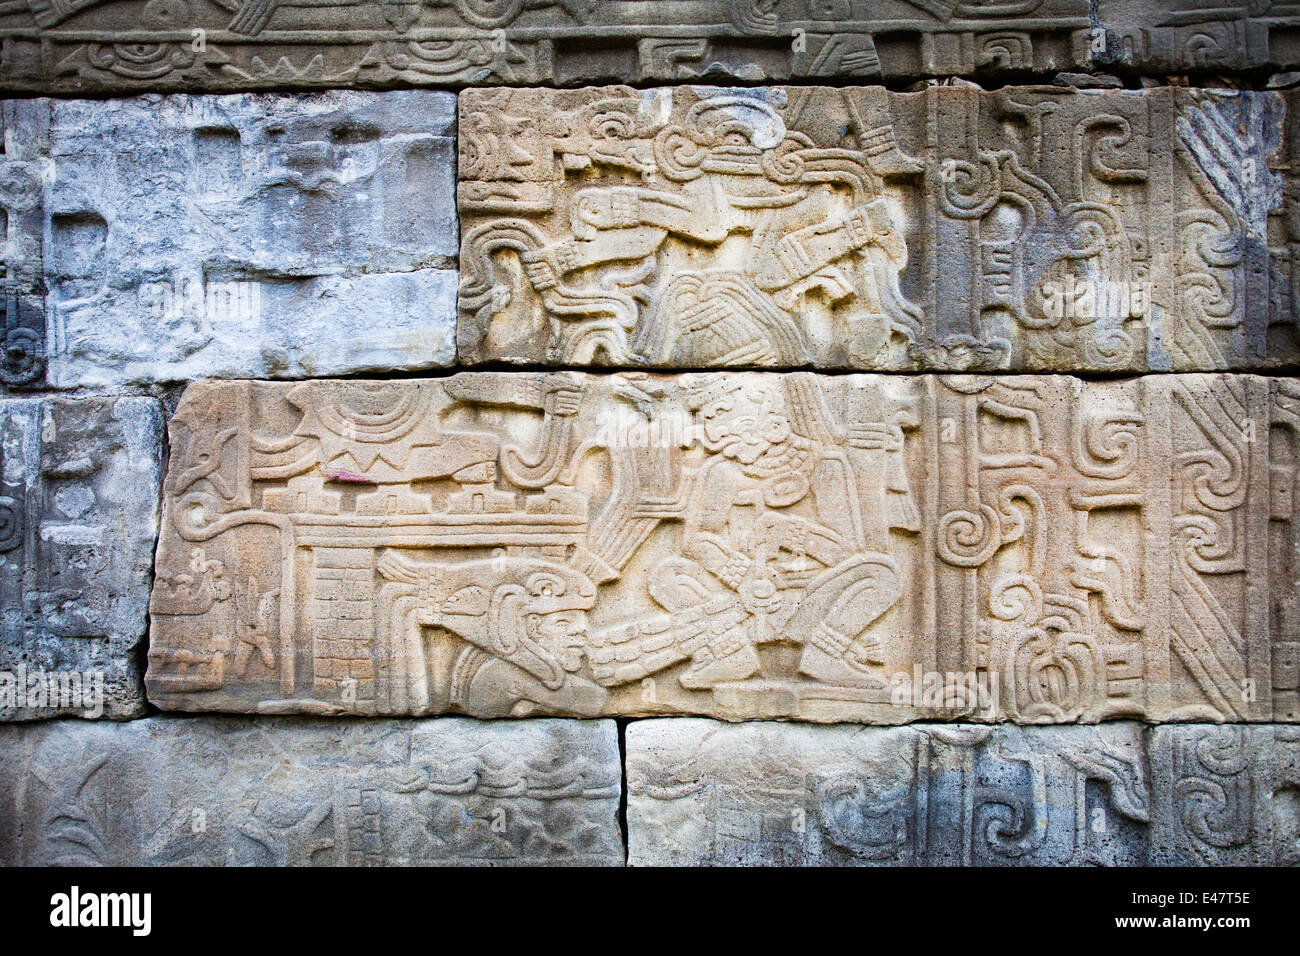 Detail of an engraved mural at the Tajin ruins in Veracruz, Mexico. - Stock Image